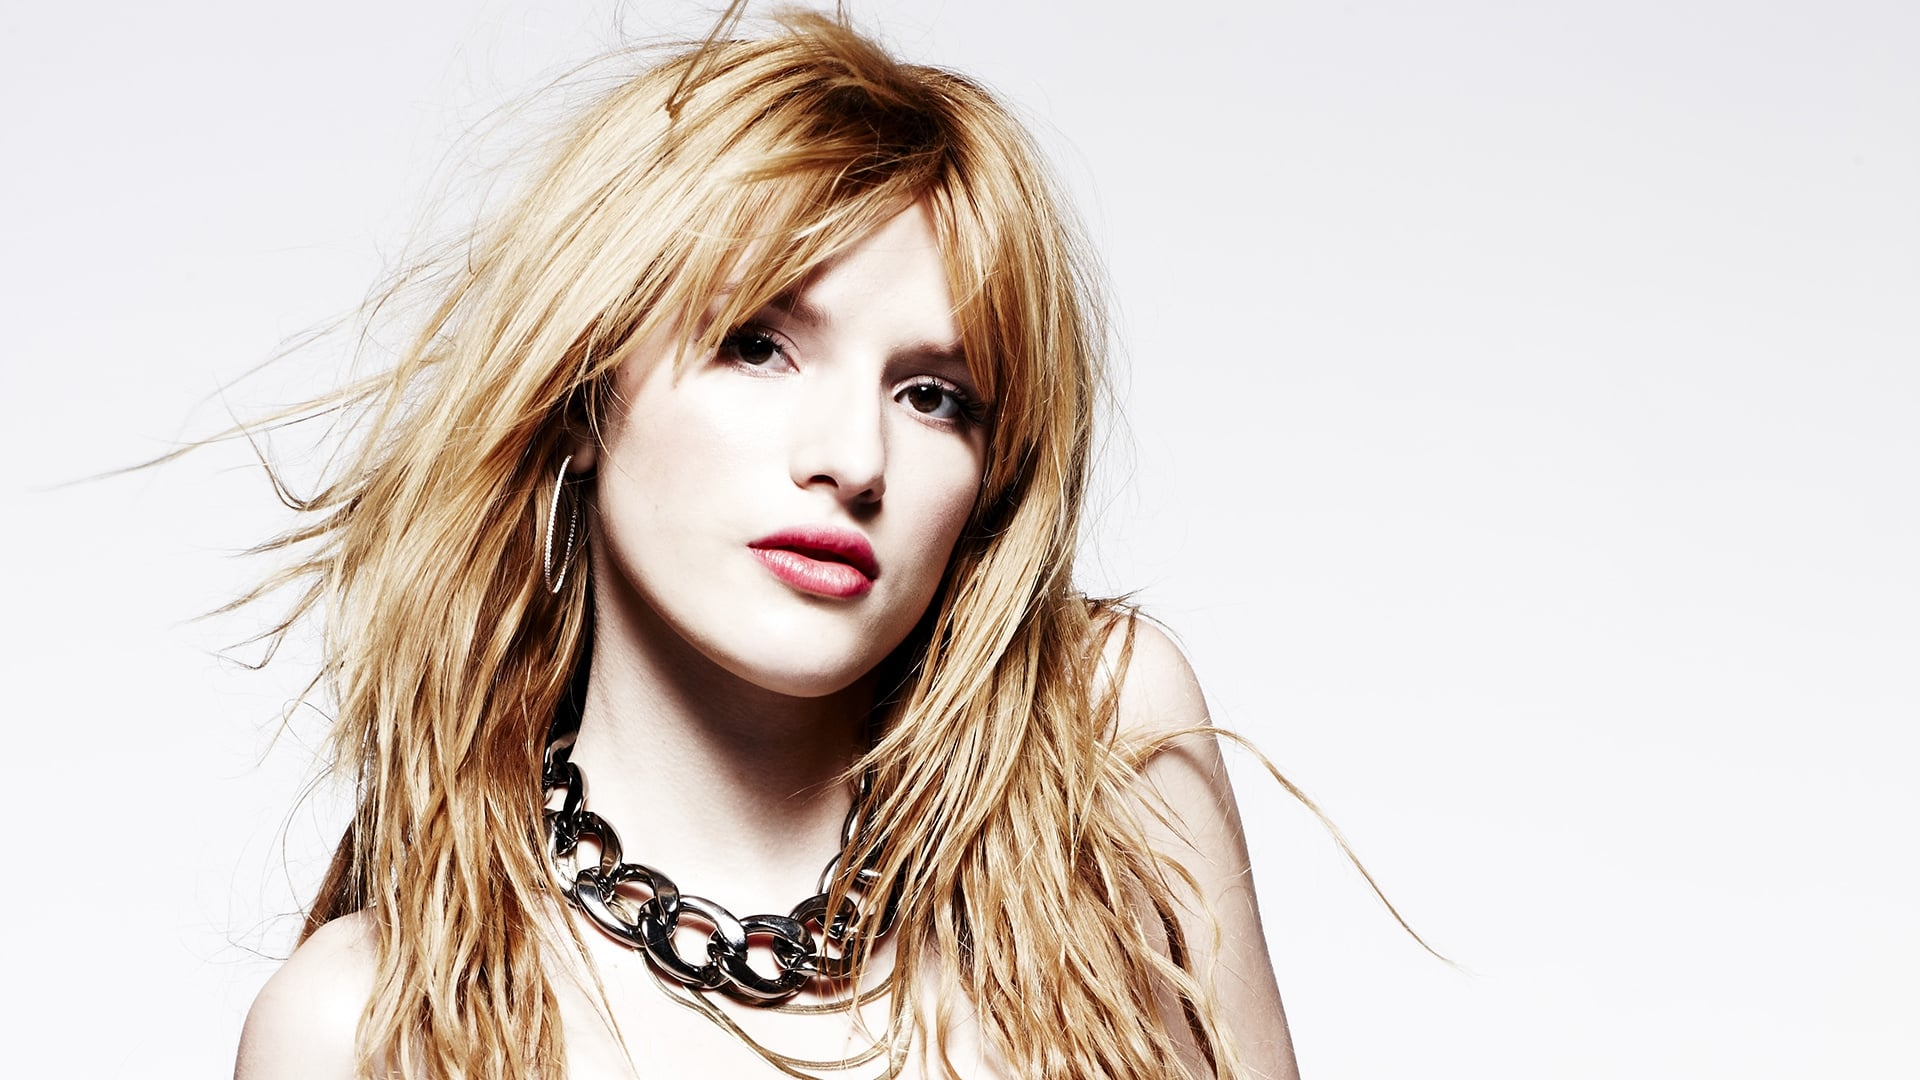 bella thorne full hd wallpaper and background image | 1920x1080 | id